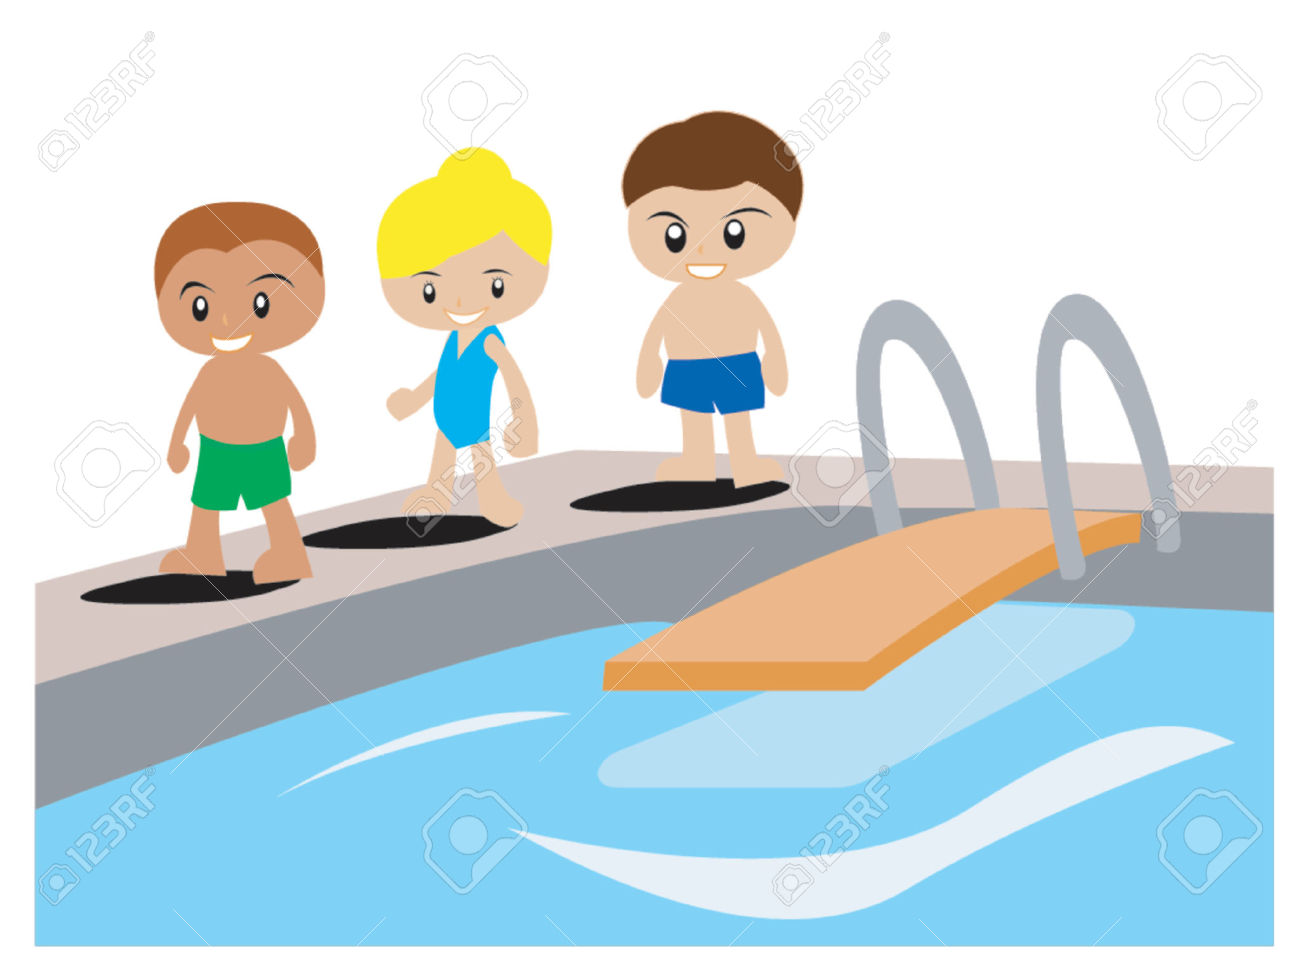 Swim in the pool clipart picture royalty free stock Swimming Pool Clipart Group with 53+ items picture royalty free stock